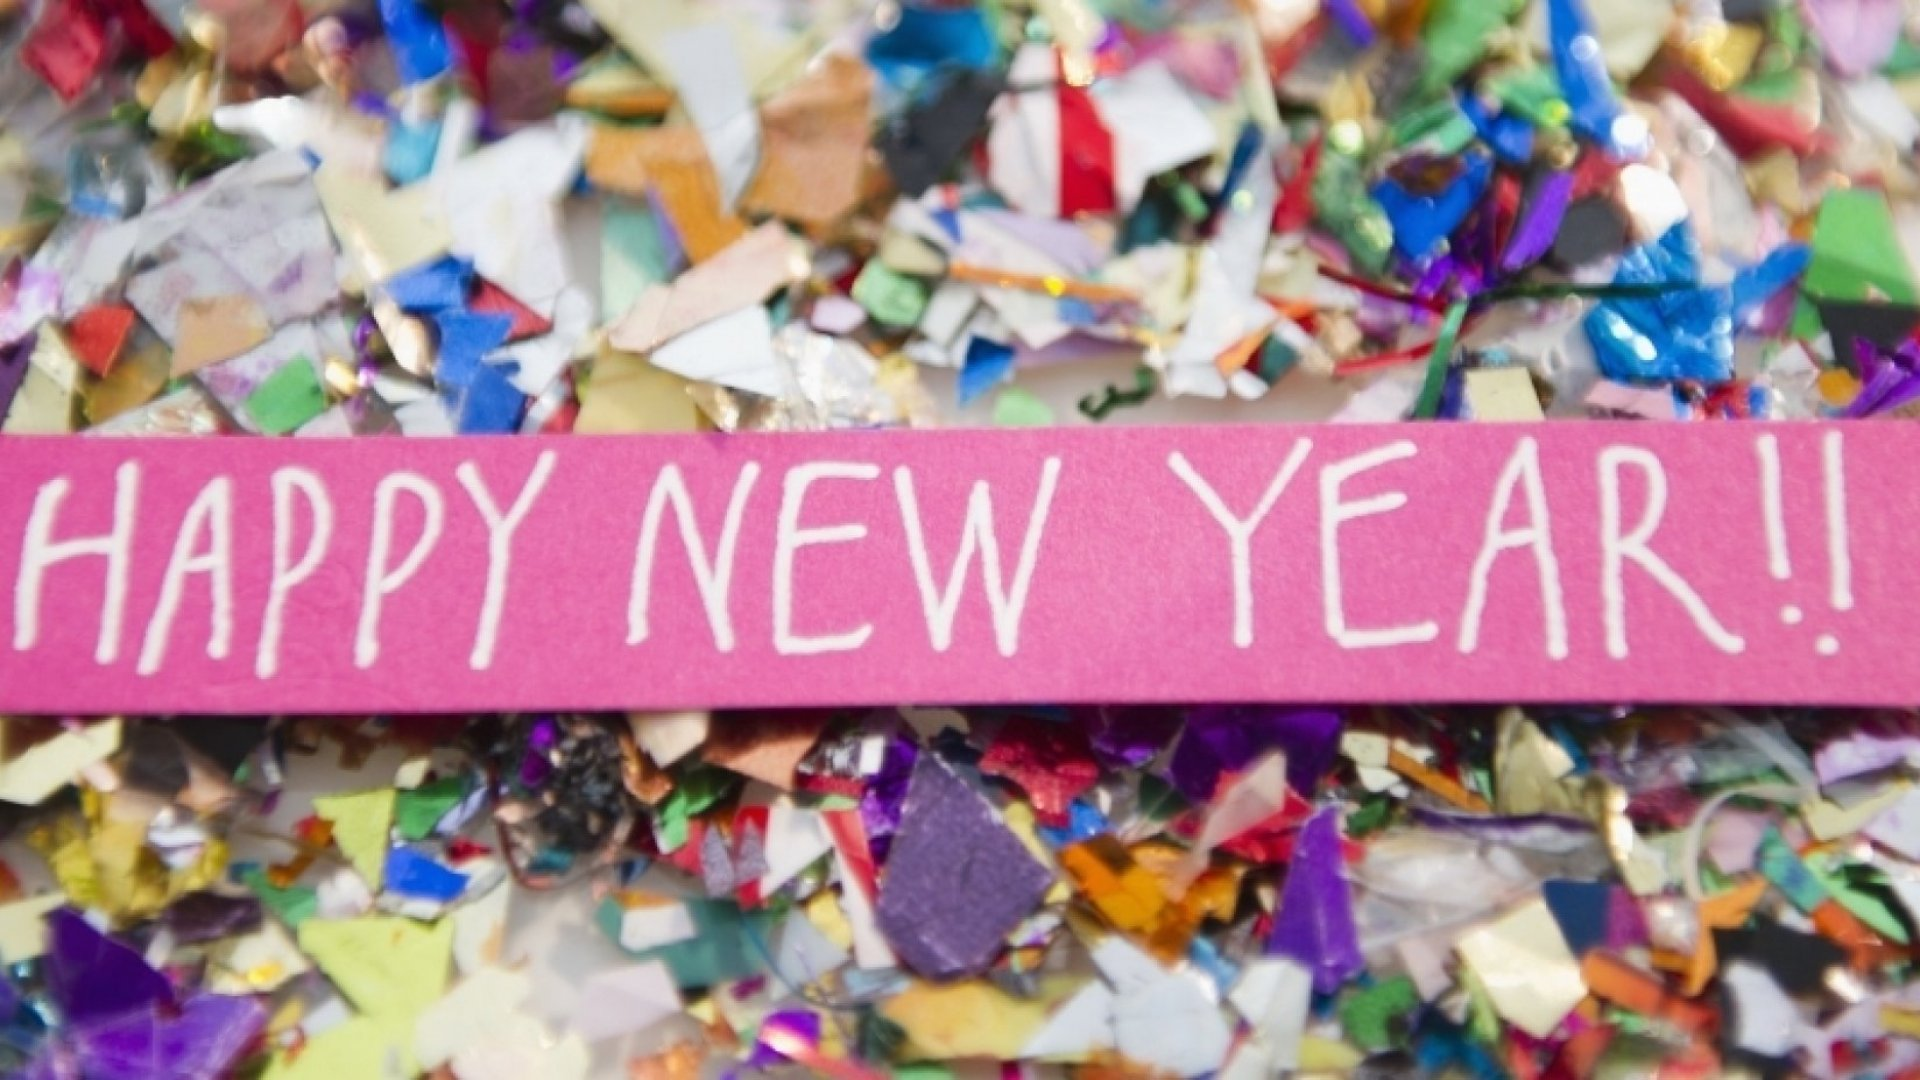 5 Clever Ways to Make Sure You Stick to Your New Year's Resolutions